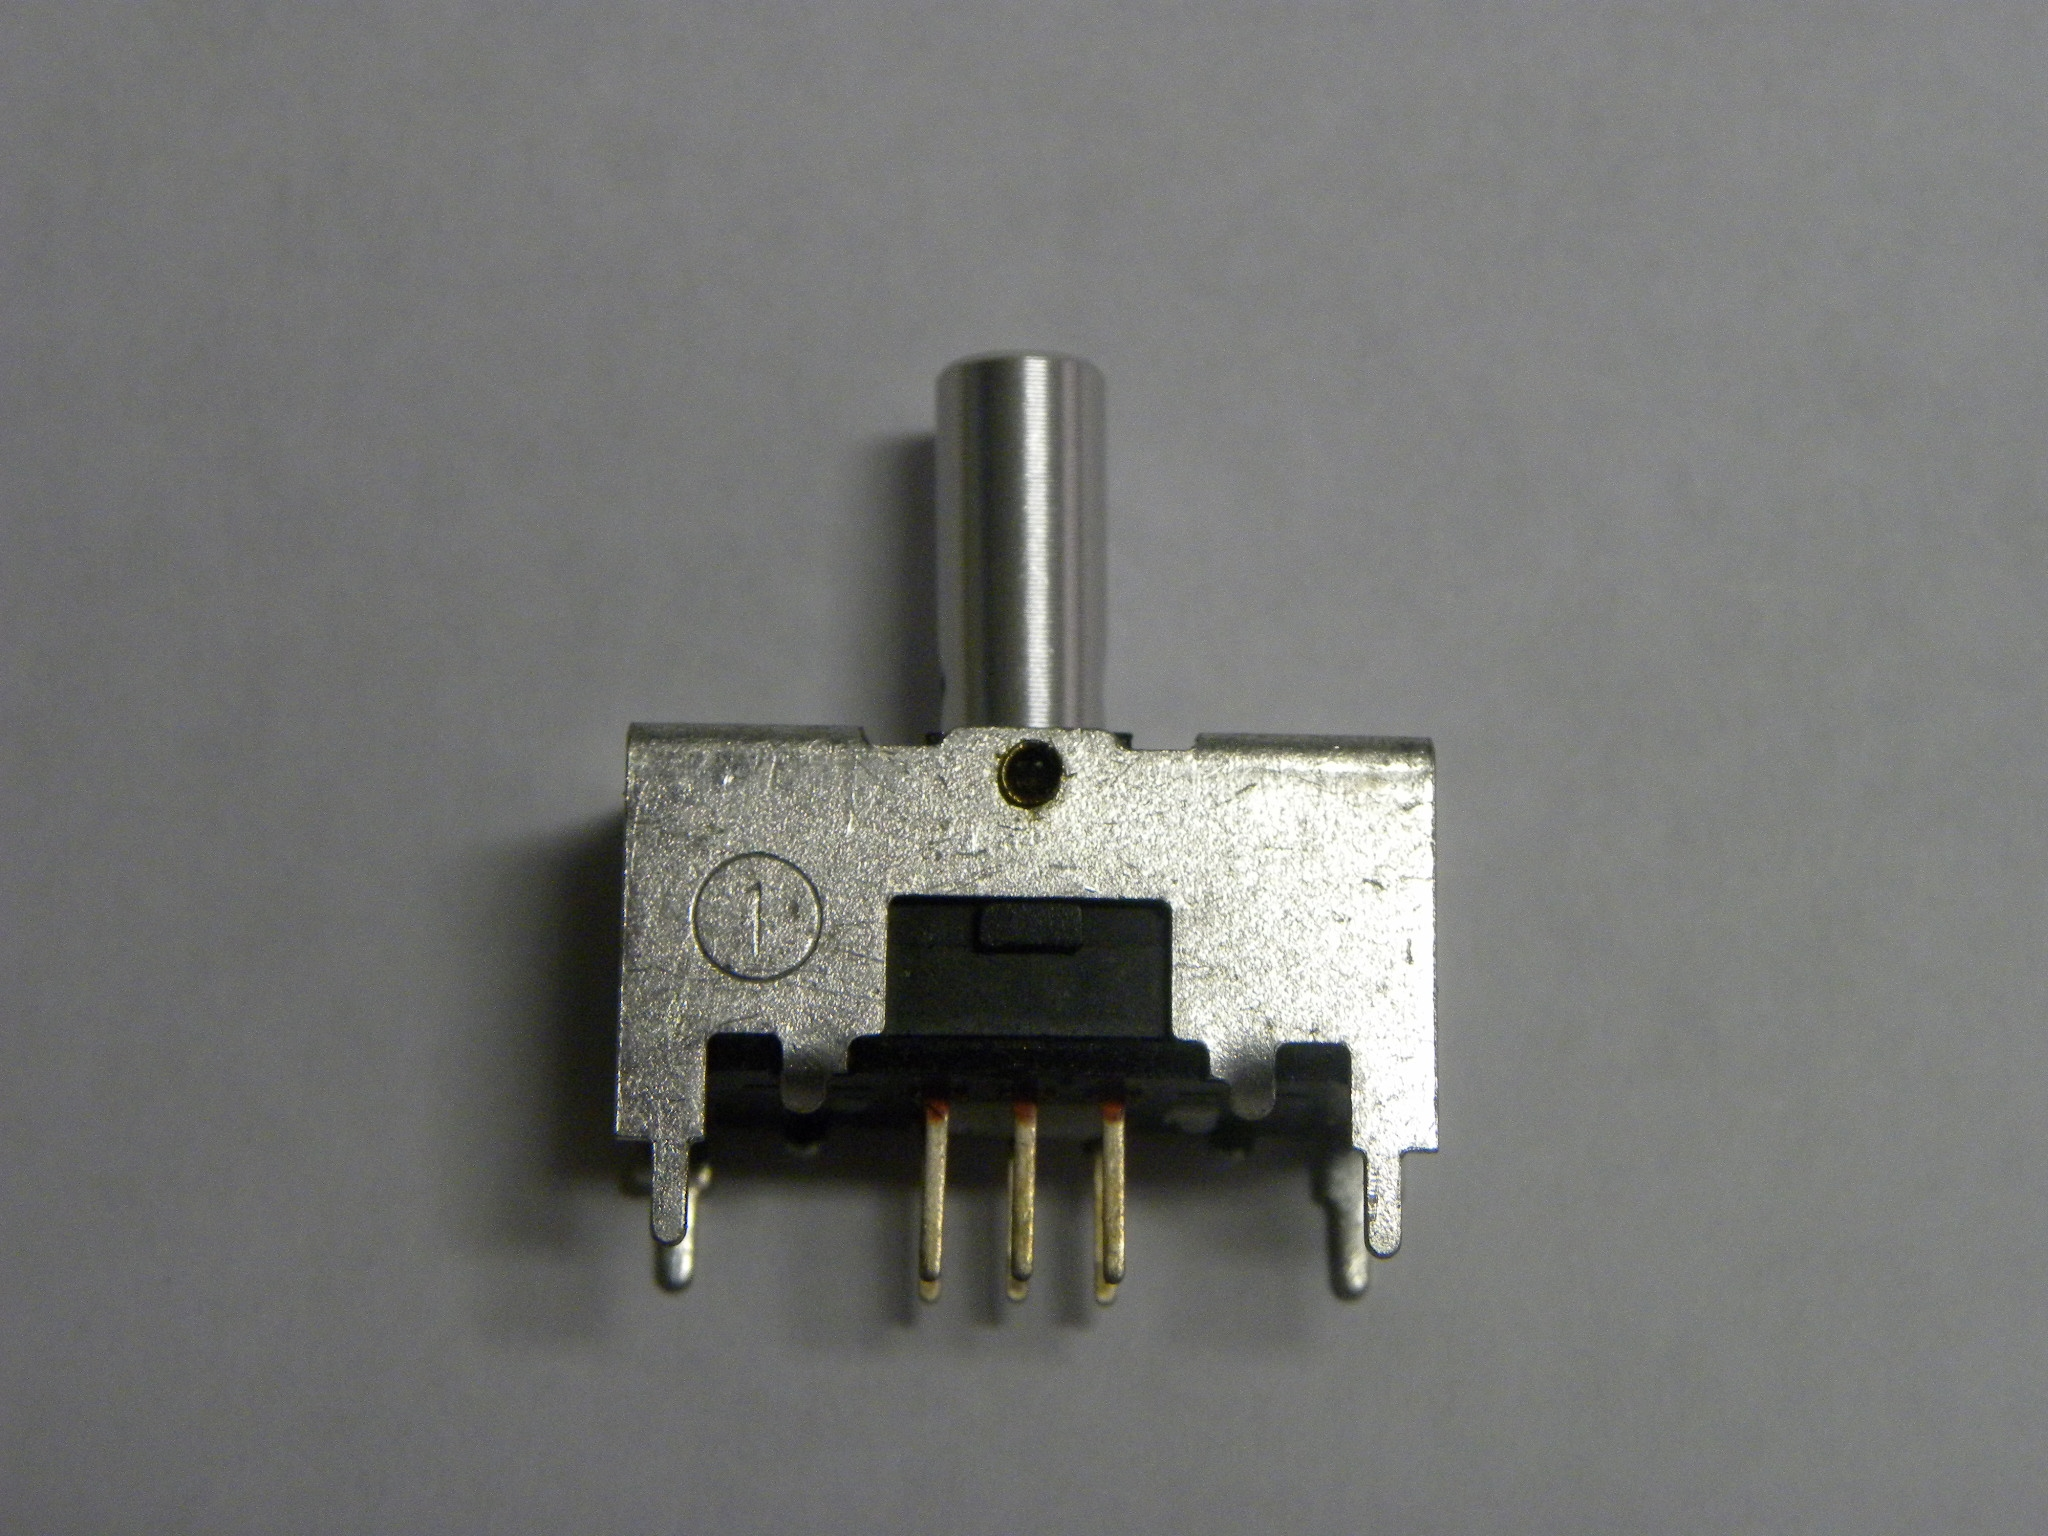 Vestax PCV-175 - P.F.L. ON/OFF, PCV-180 - SPLIT (MONITOR),PCV-180 6 pin 2 position switch